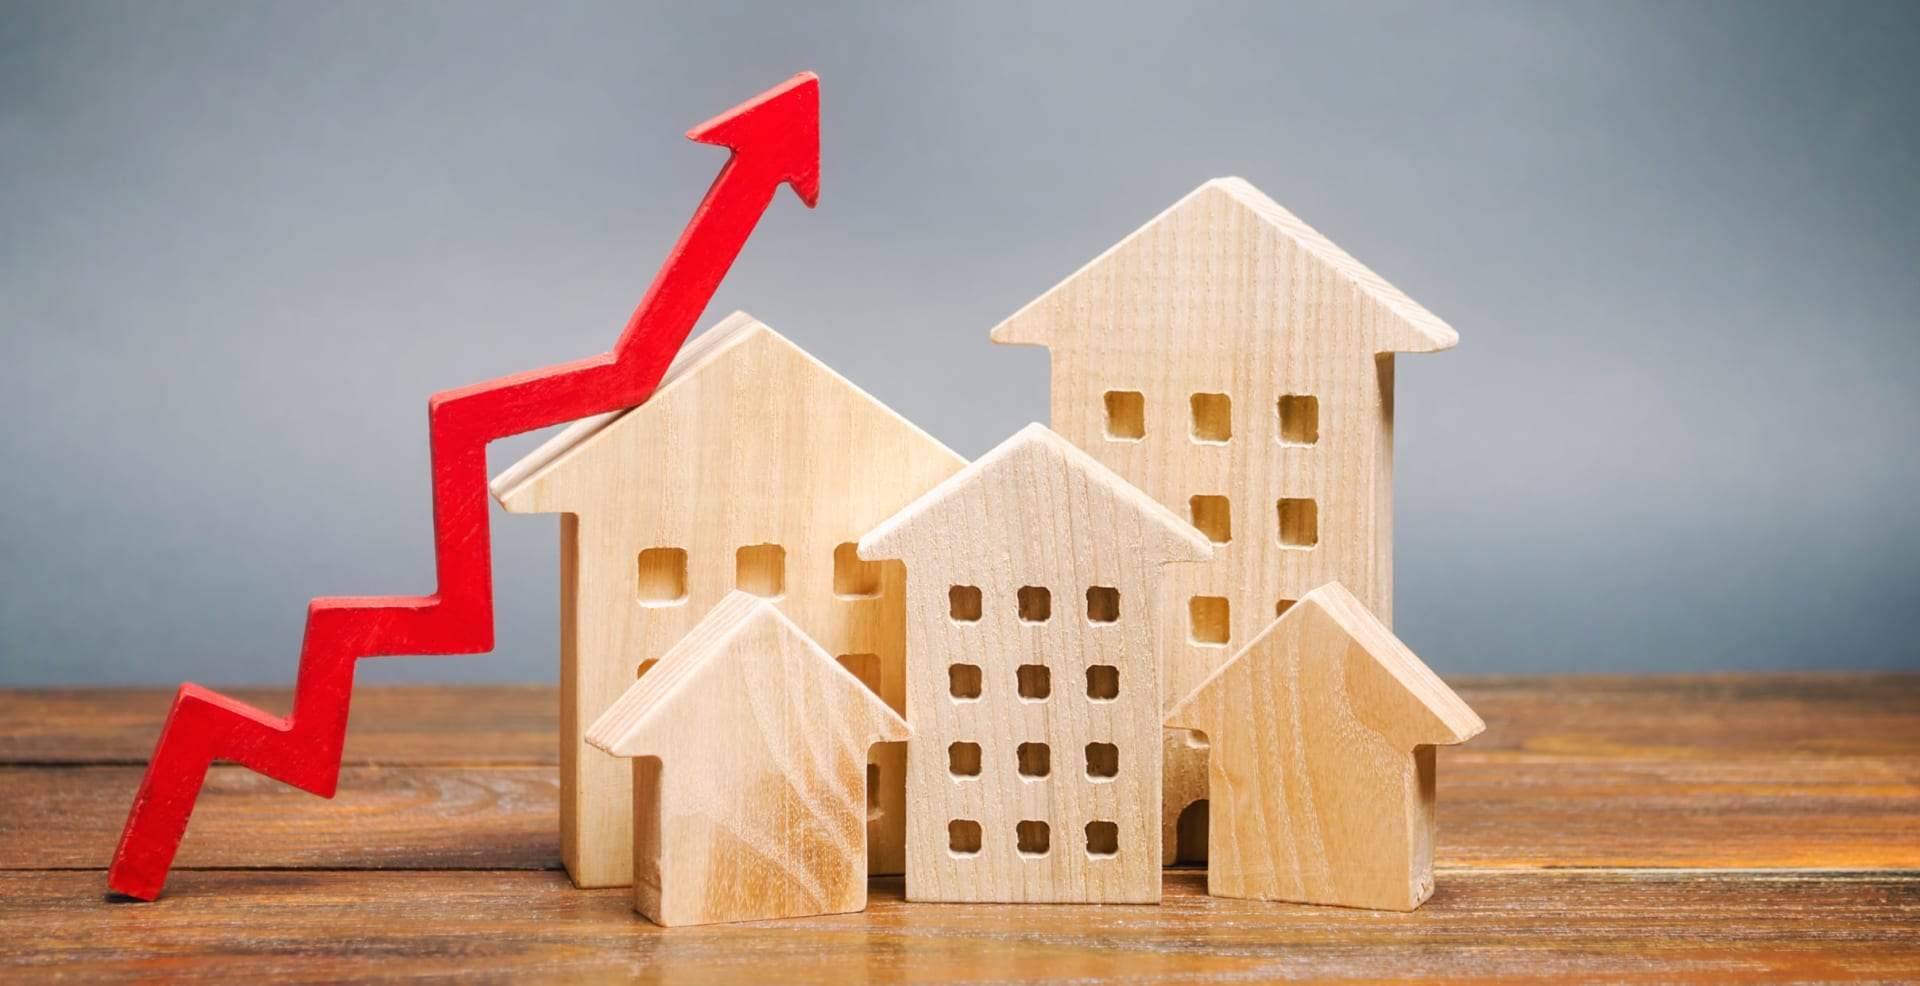 How is Value Decided in Real Estate?